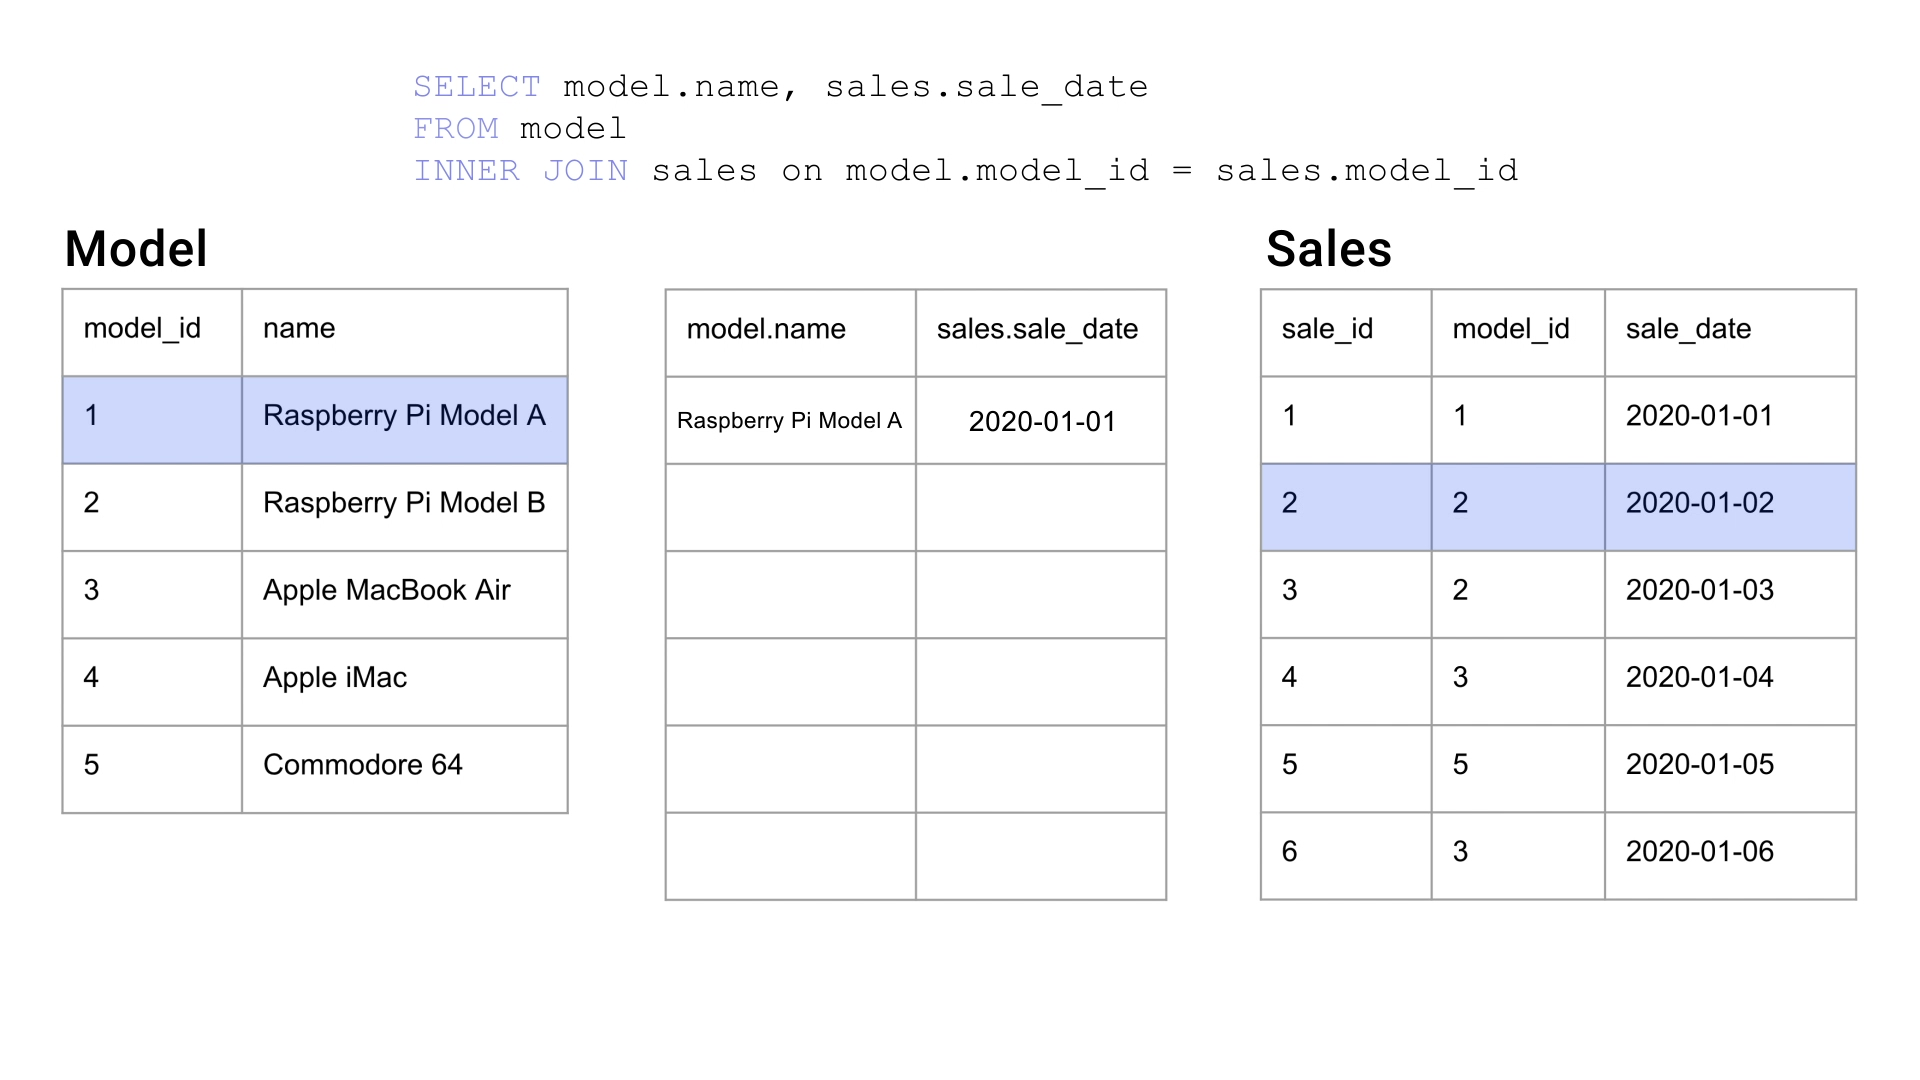 A still from the animation as previously, but now with the first record of the `model` table and the second record of the `sales` table higlighted